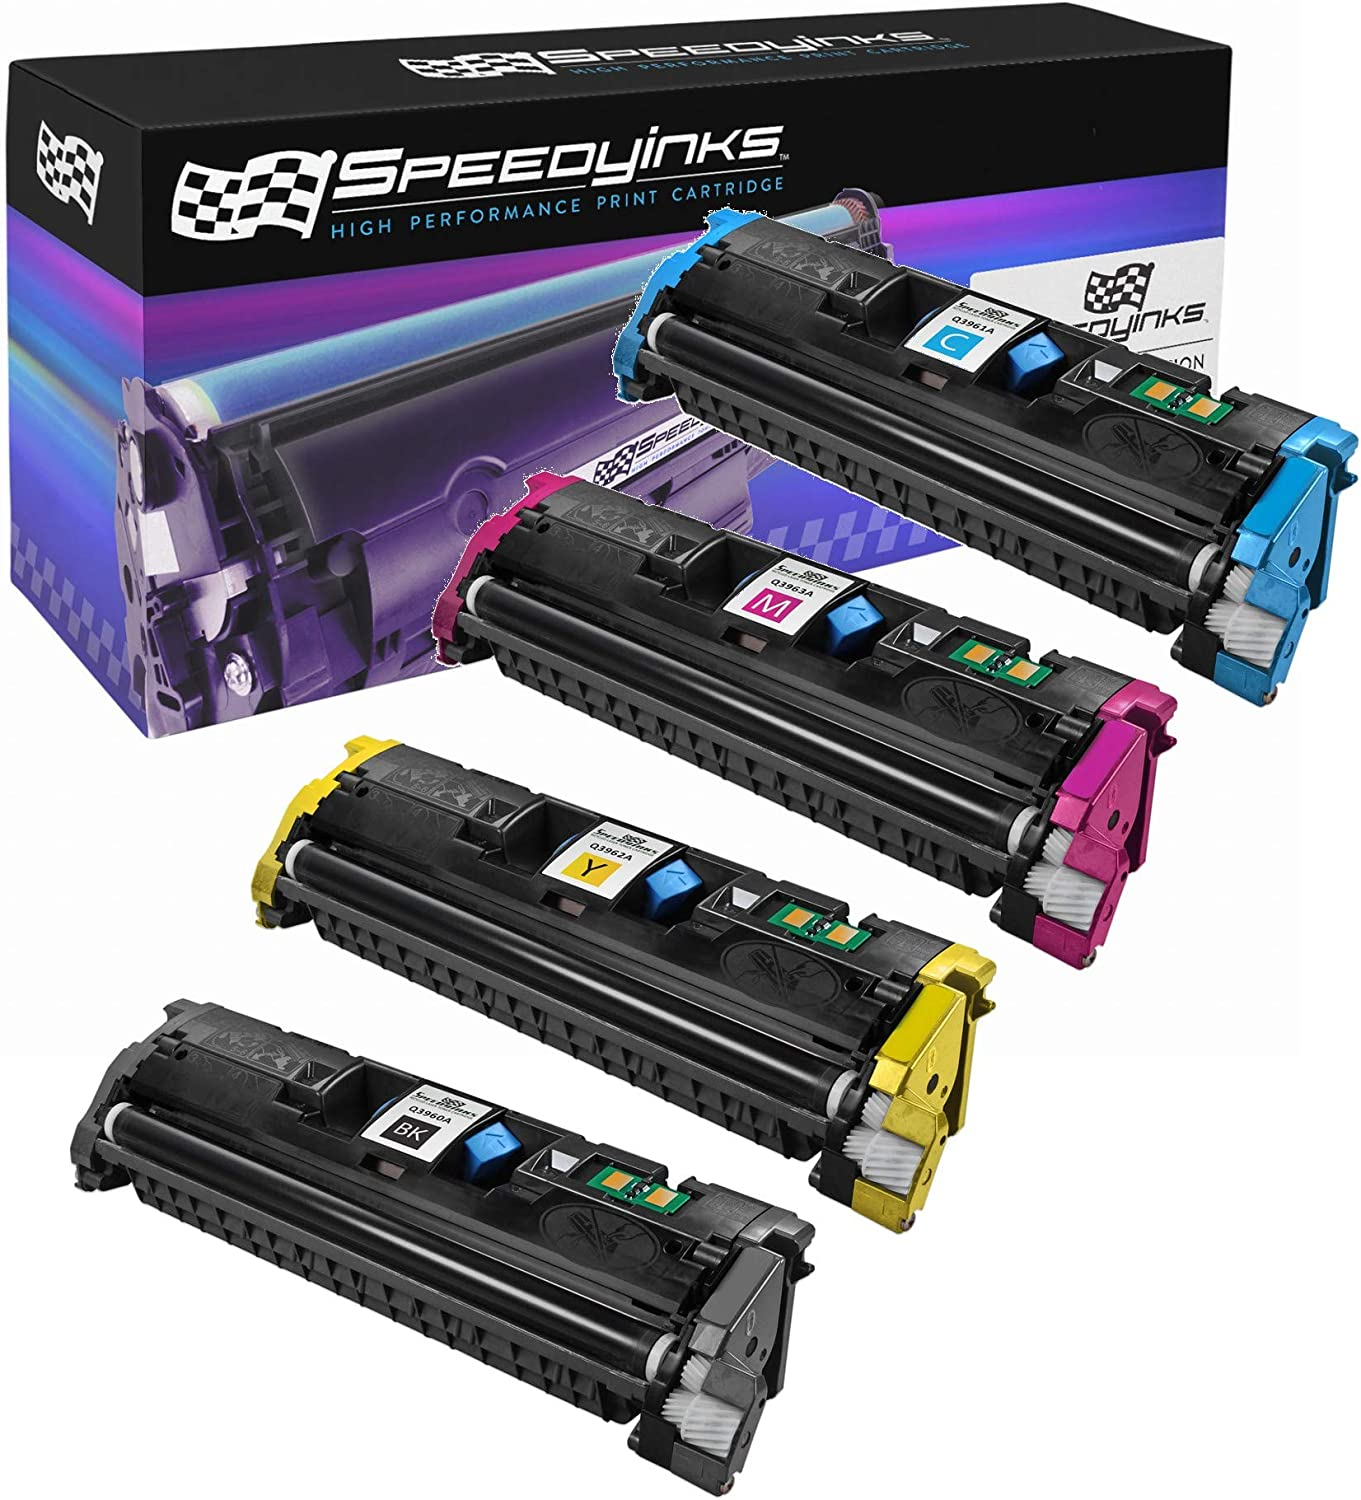 Speedy Inks Remanufactured Toner Cartridge Replacement for HP 122A (1 Black, 1 Cyan, 1 Magenta, 1 Yellow, 4-Pack)